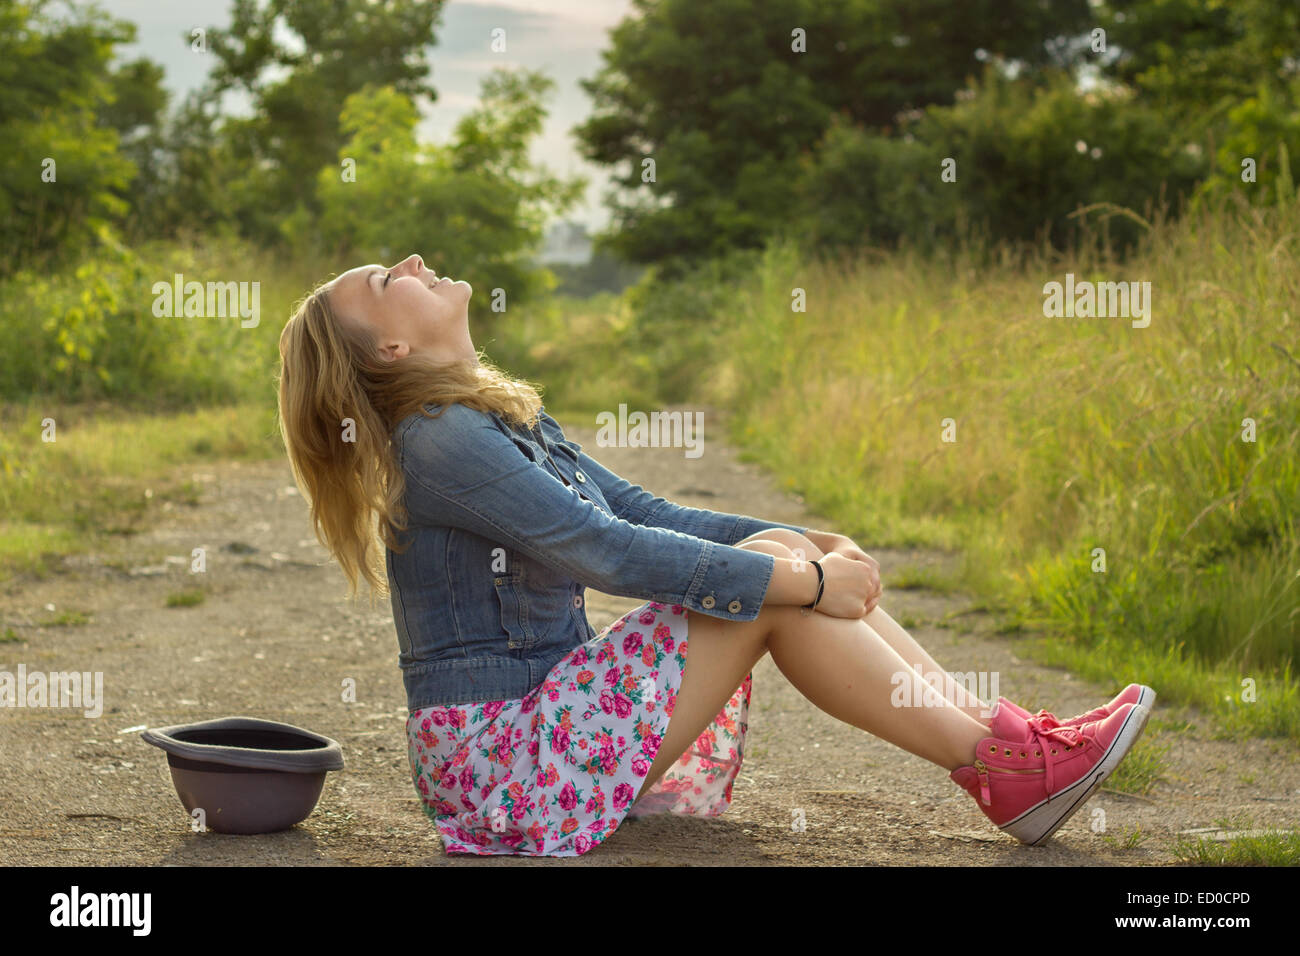 Blonde girl (14-15) sitting on dirt road and laughing - Stock Image